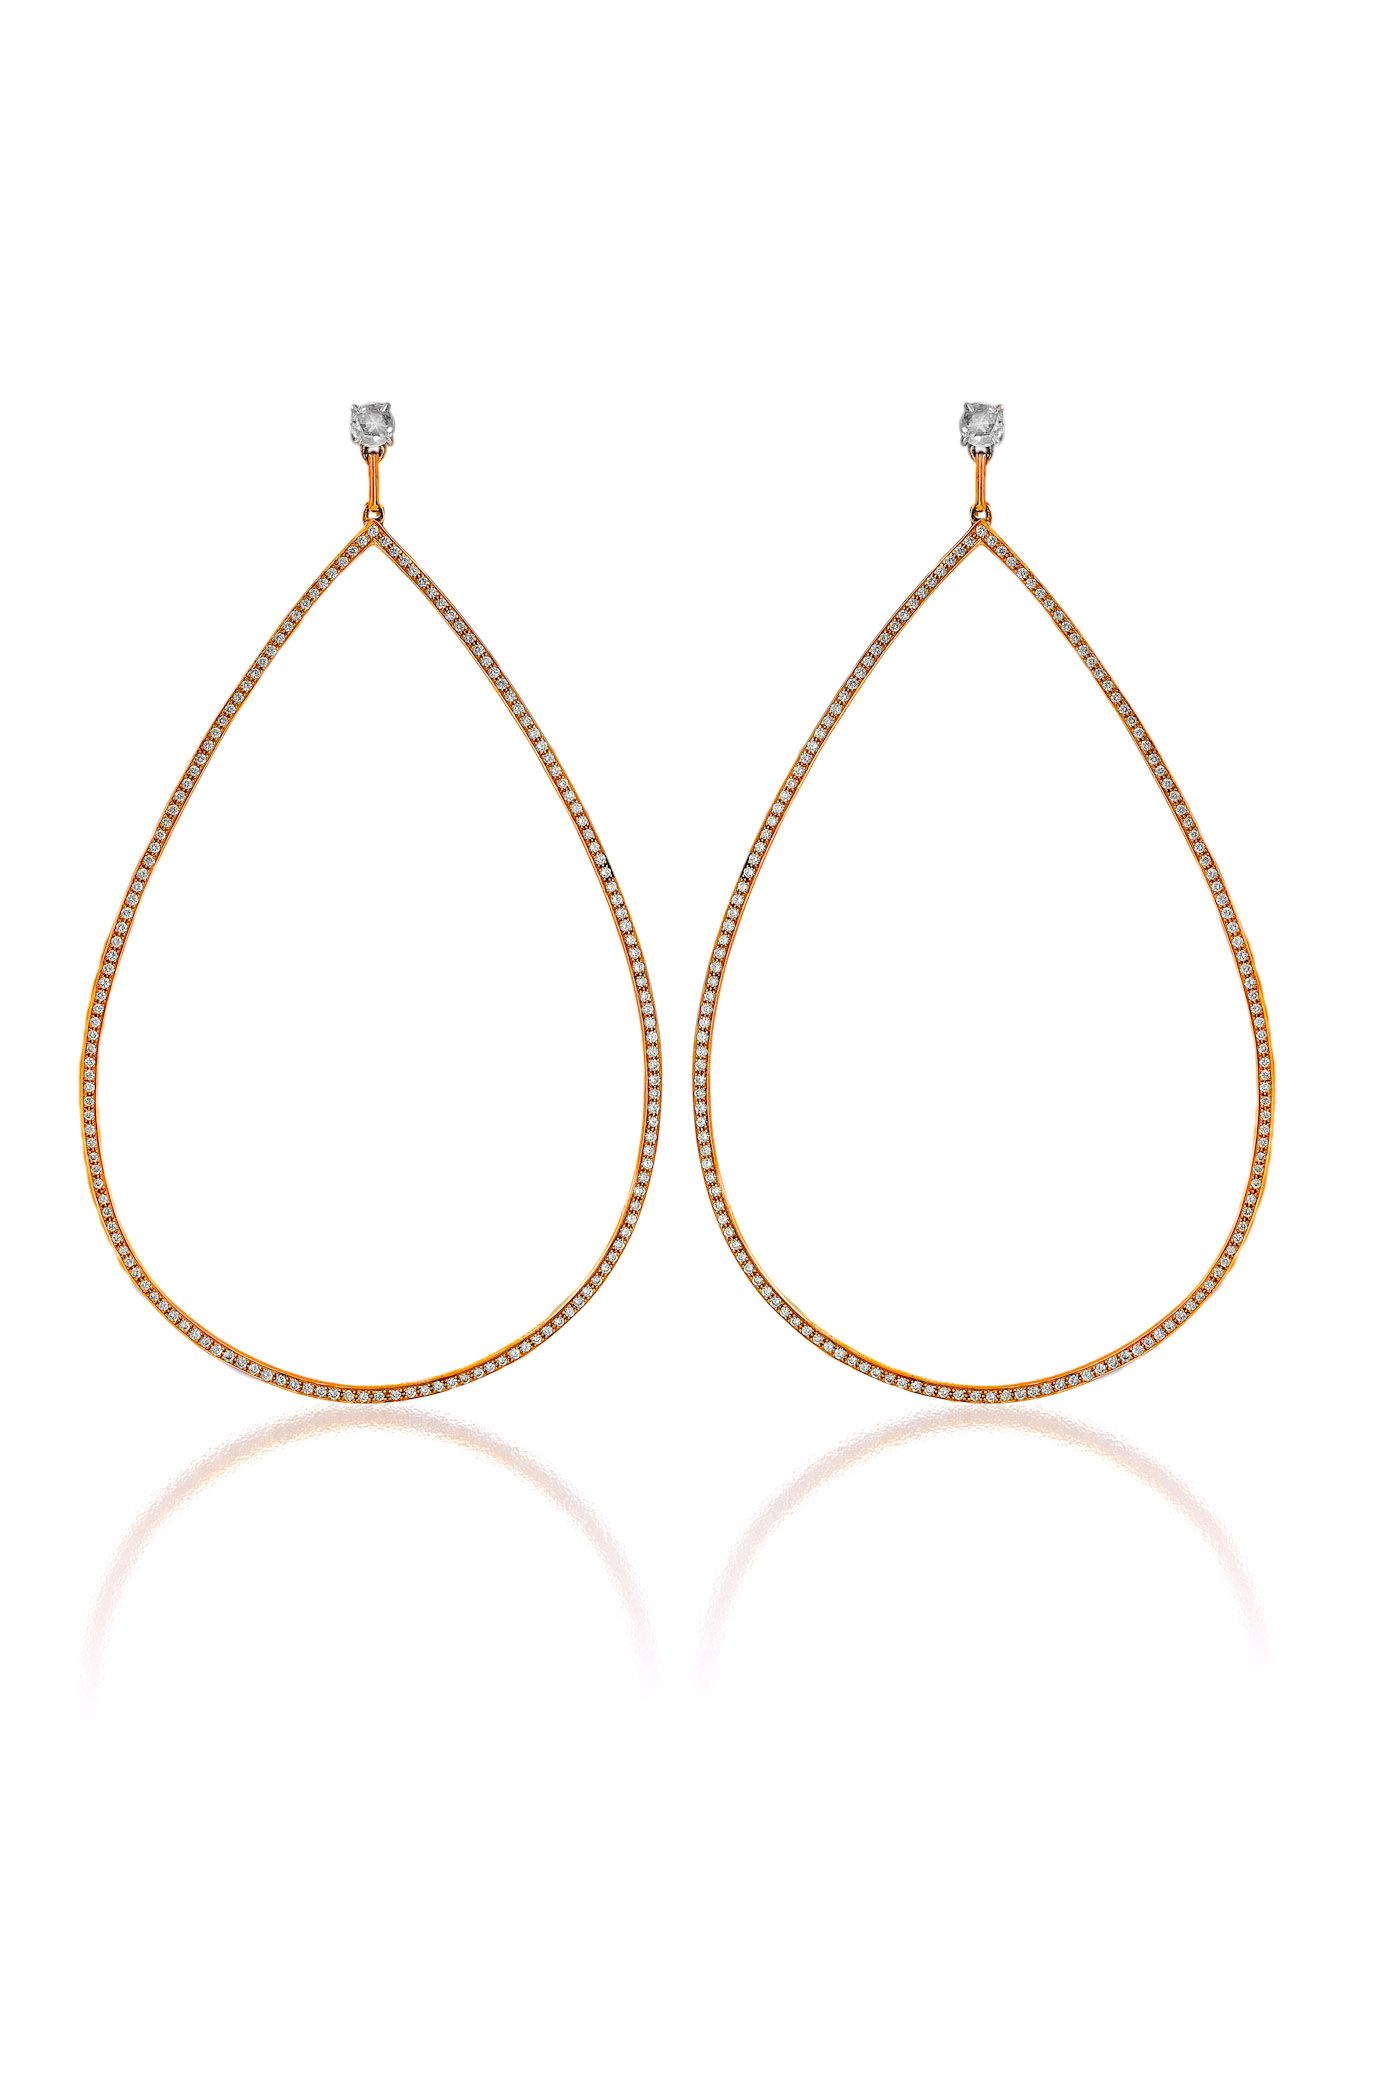 "Seductive glamour is the buzzword with Haute Vault's oversized 18K rose gold and diamond teardrop earrings. For maximum exposure, sweep your hair to the side and show off this beautiful silhouette. Measures 3 1/4"" long and 1 7/8"" wide. Available for rental at www.hautevault.com"